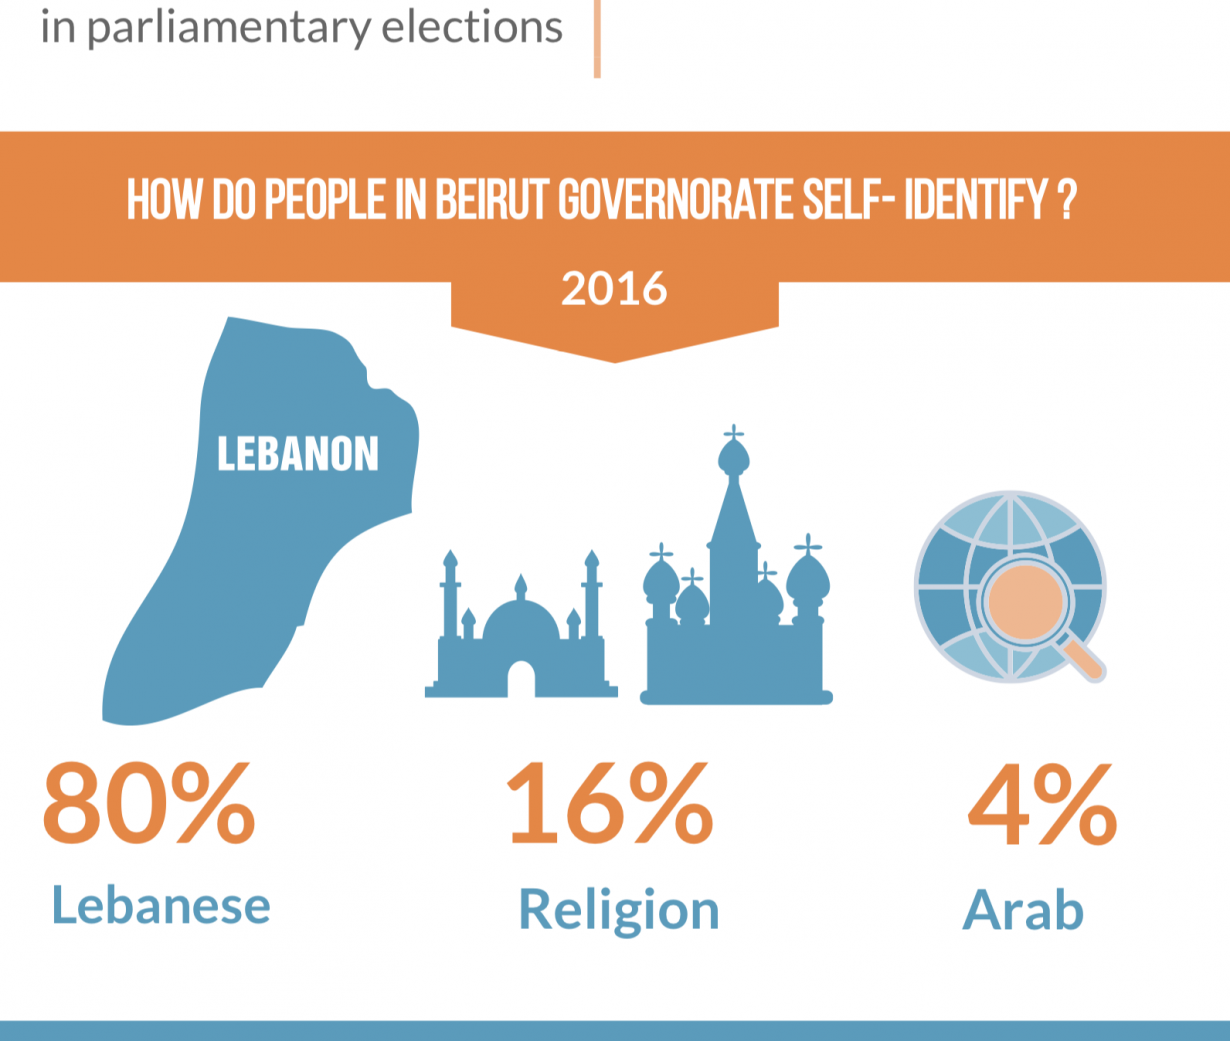 What are the political attitudes of citizens in Beirut Governorate – Lebanon?